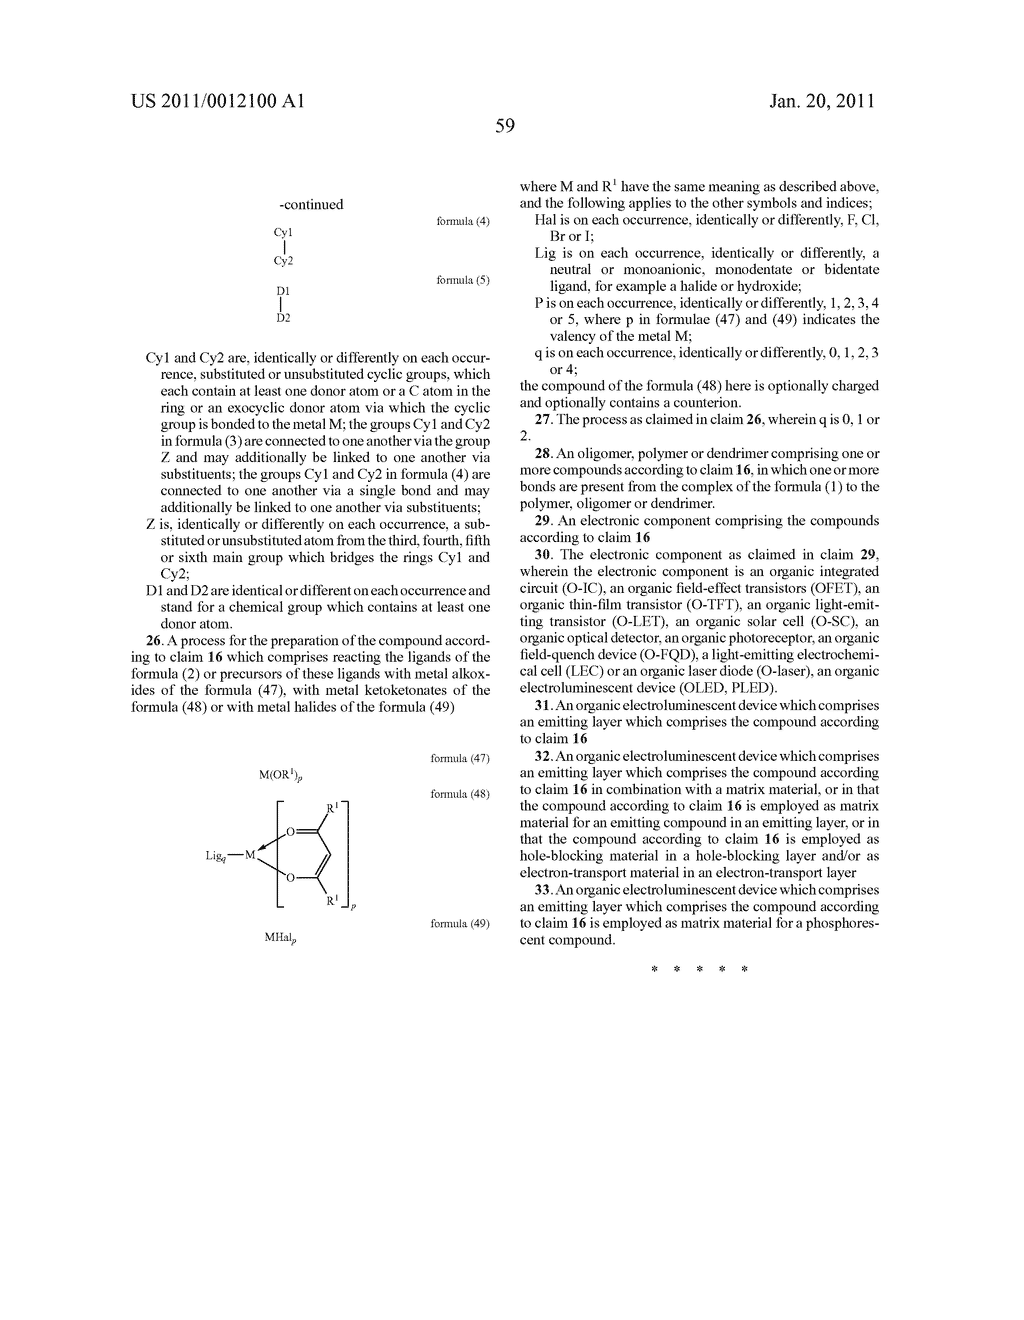 METAL COMPLEXES - diagram, schematic, and image 60